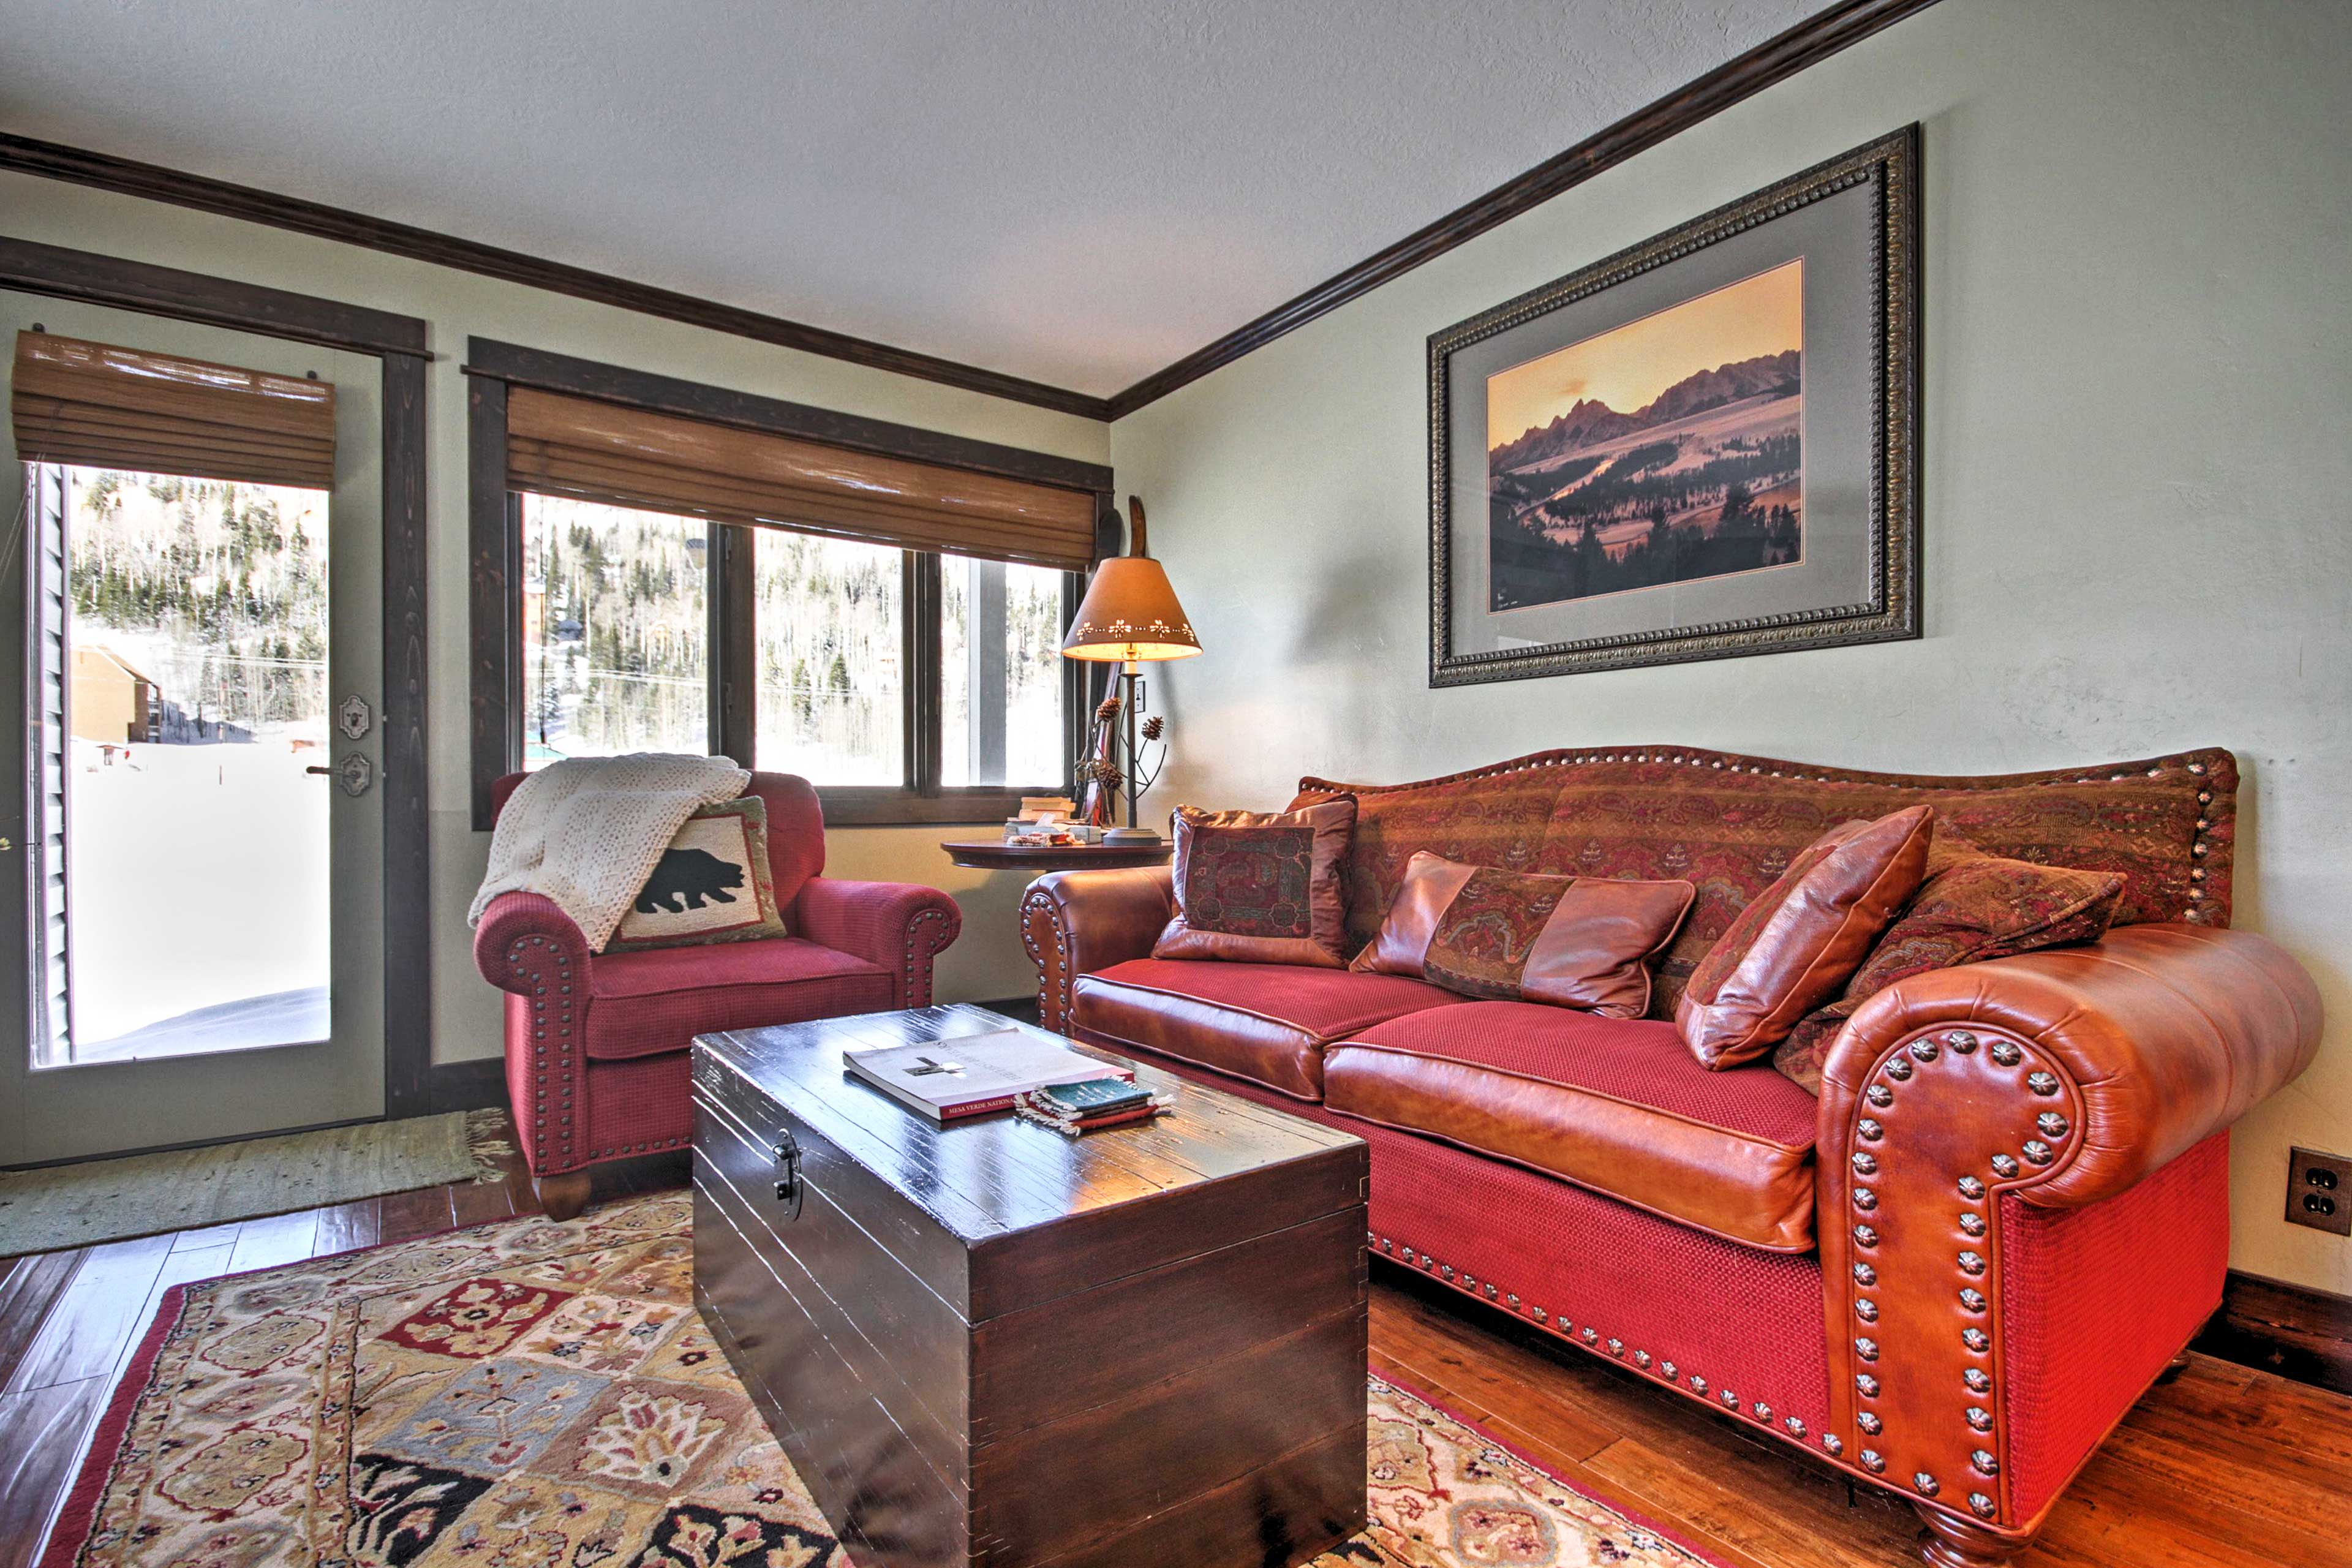 Relax on the plush couches in the living room.